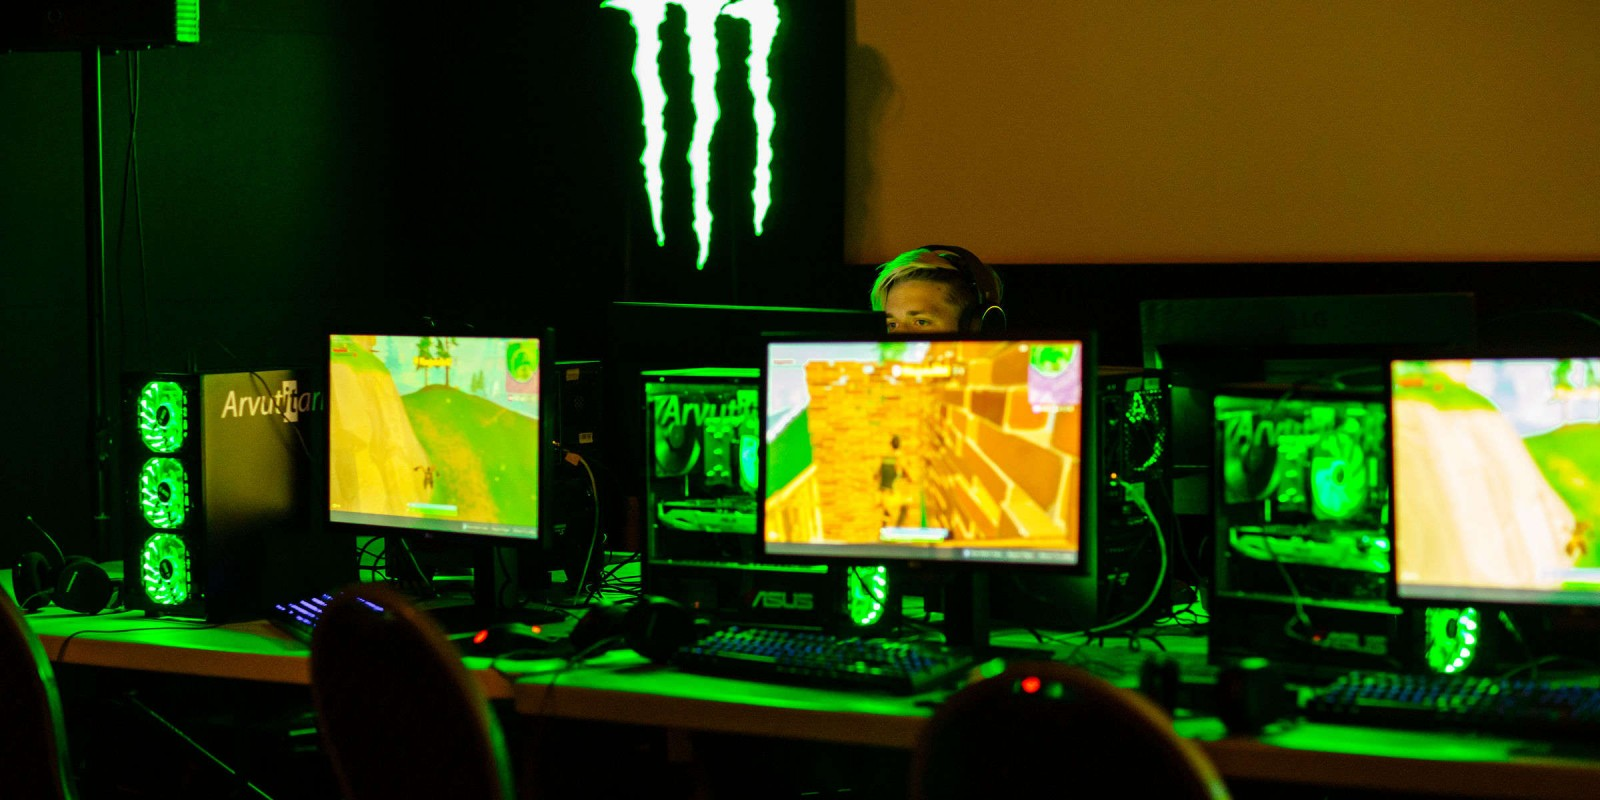 Largest Estonian gaming event, gaming night - MängudeÖÖ. The event is held in cinema, allowing to experience gaming on large screens.